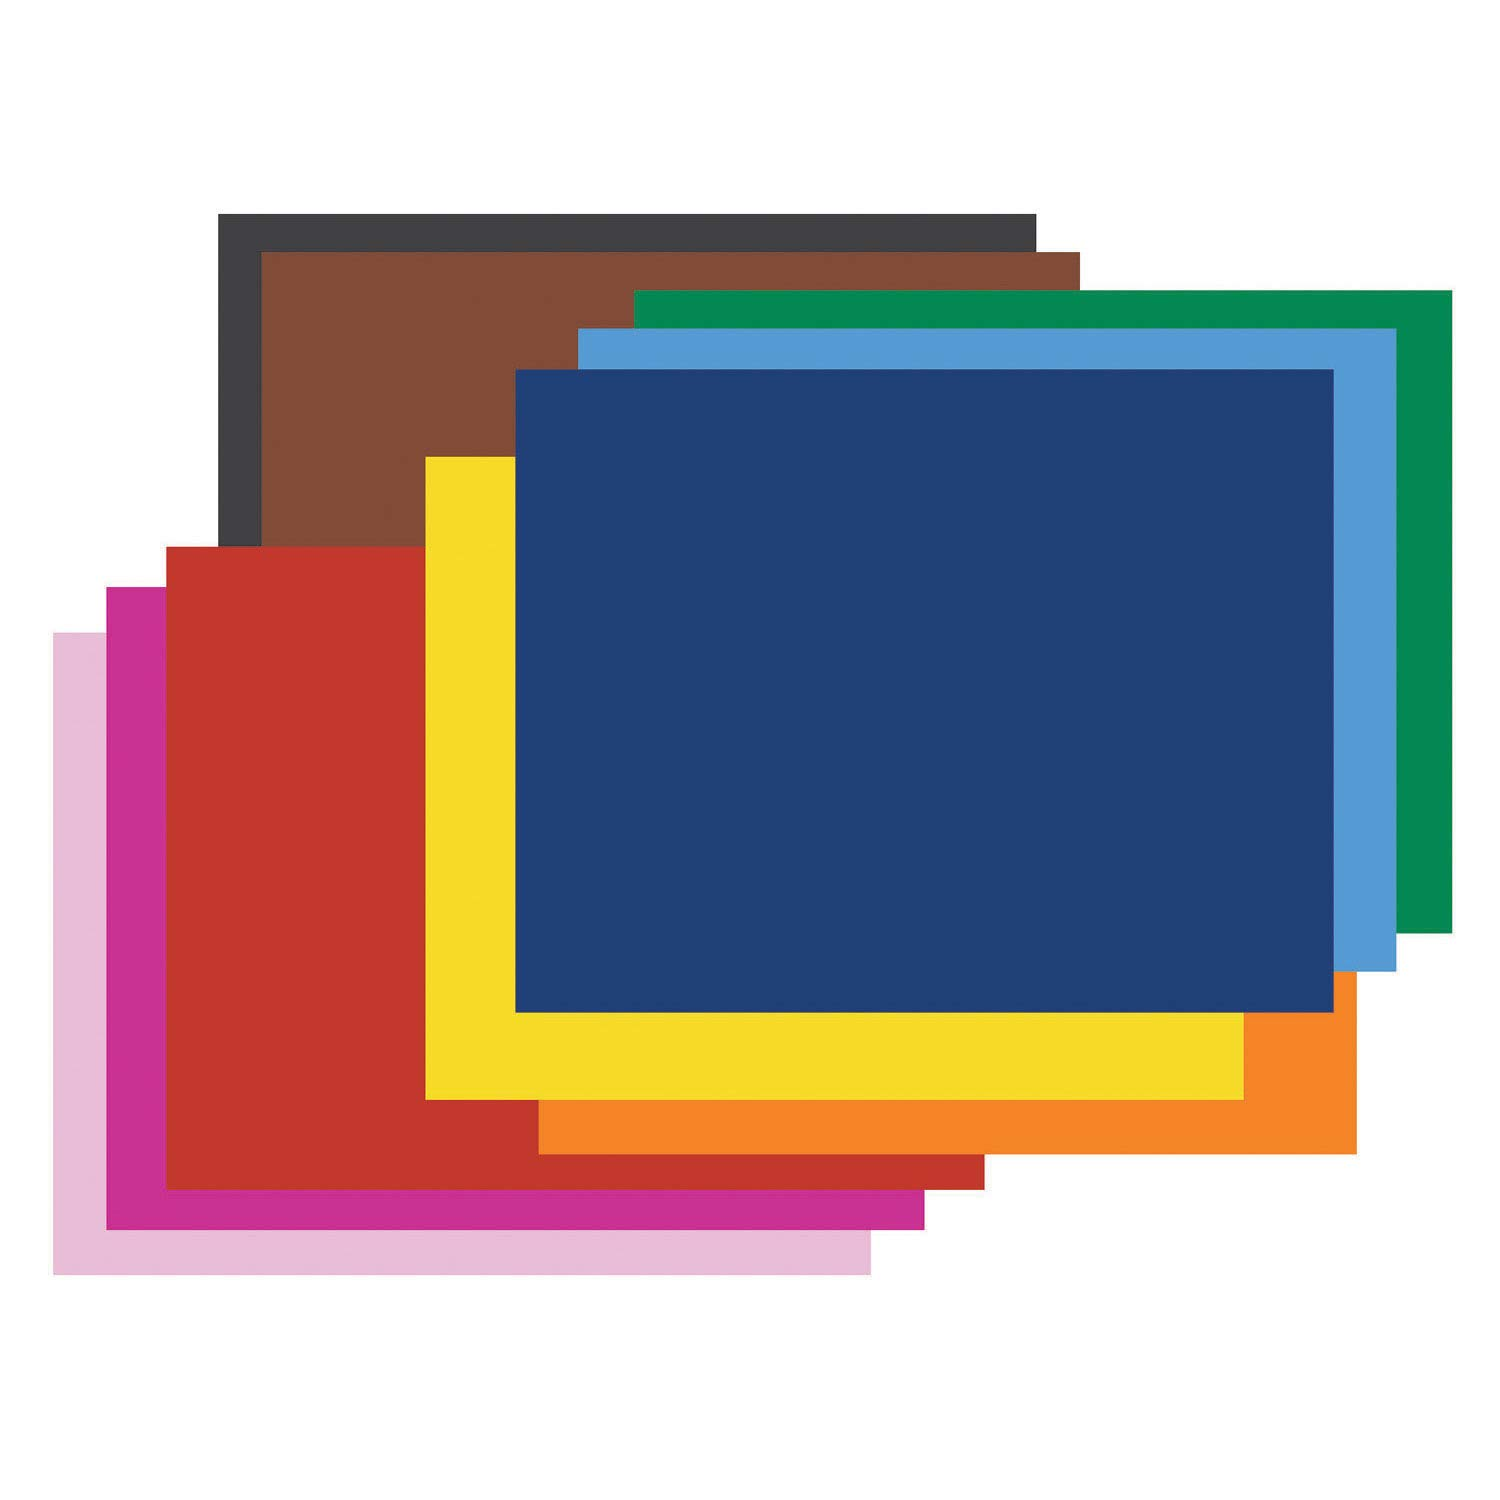 Pacon PAC54871 4-Ply Railroad Board, 10 Assorted Colors, 22'' x 28'', 25 Sheets by PACON